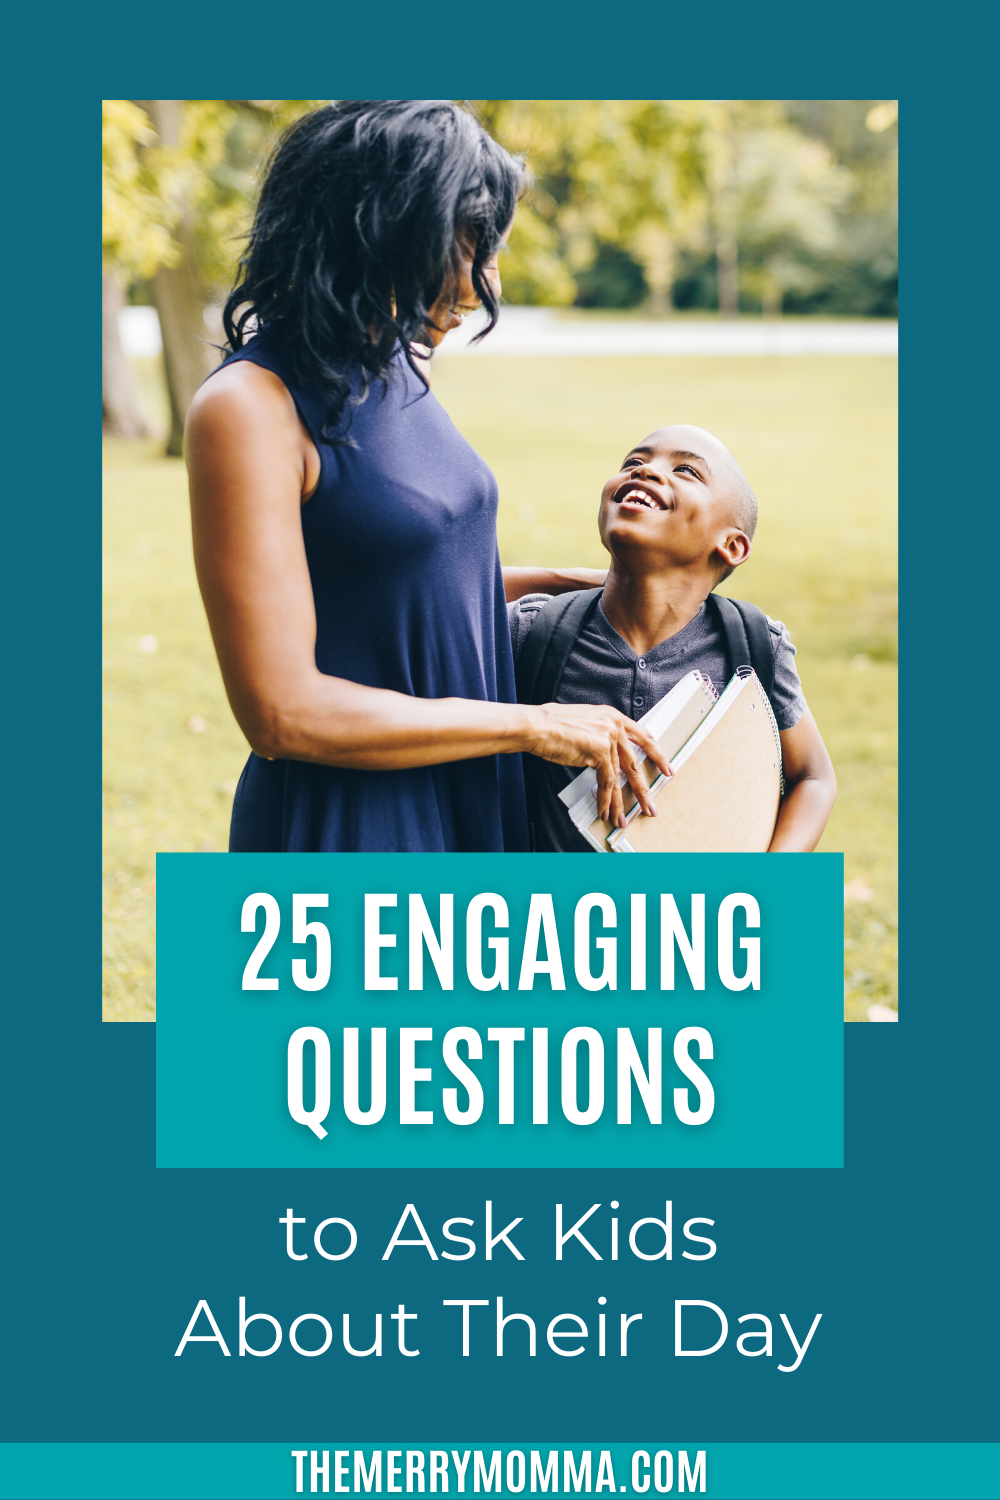 25 Engaging Questions to Ask Your Kids About Their Day